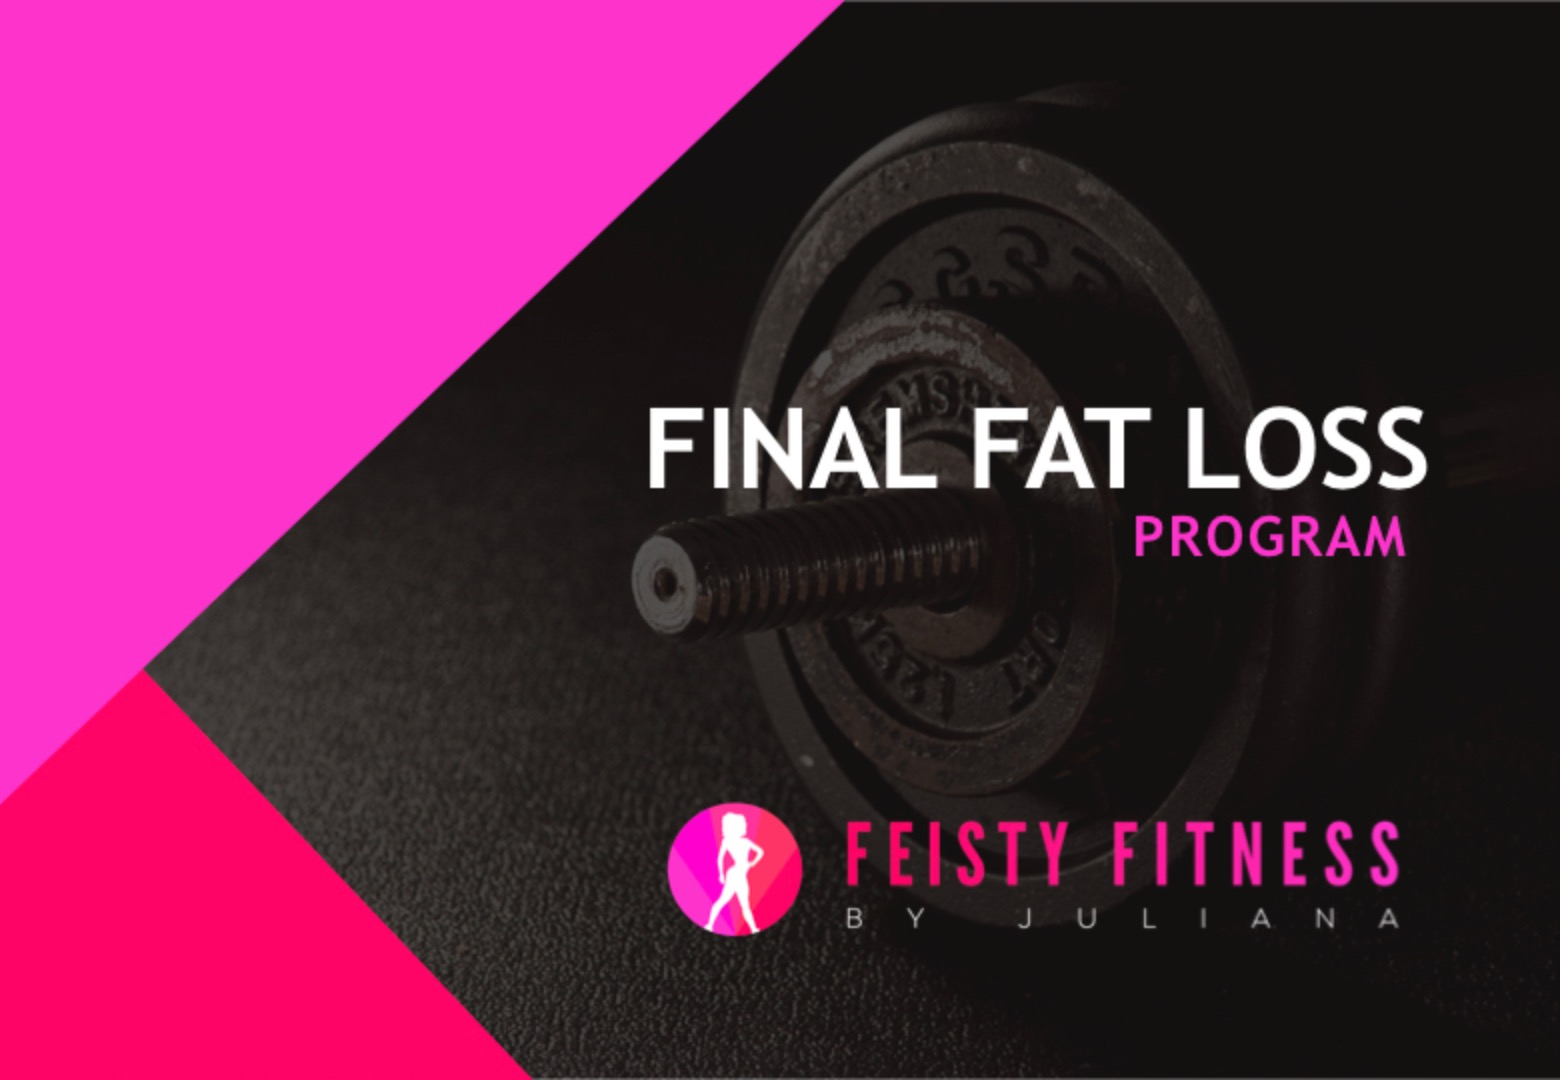 Final Fat Loss Program